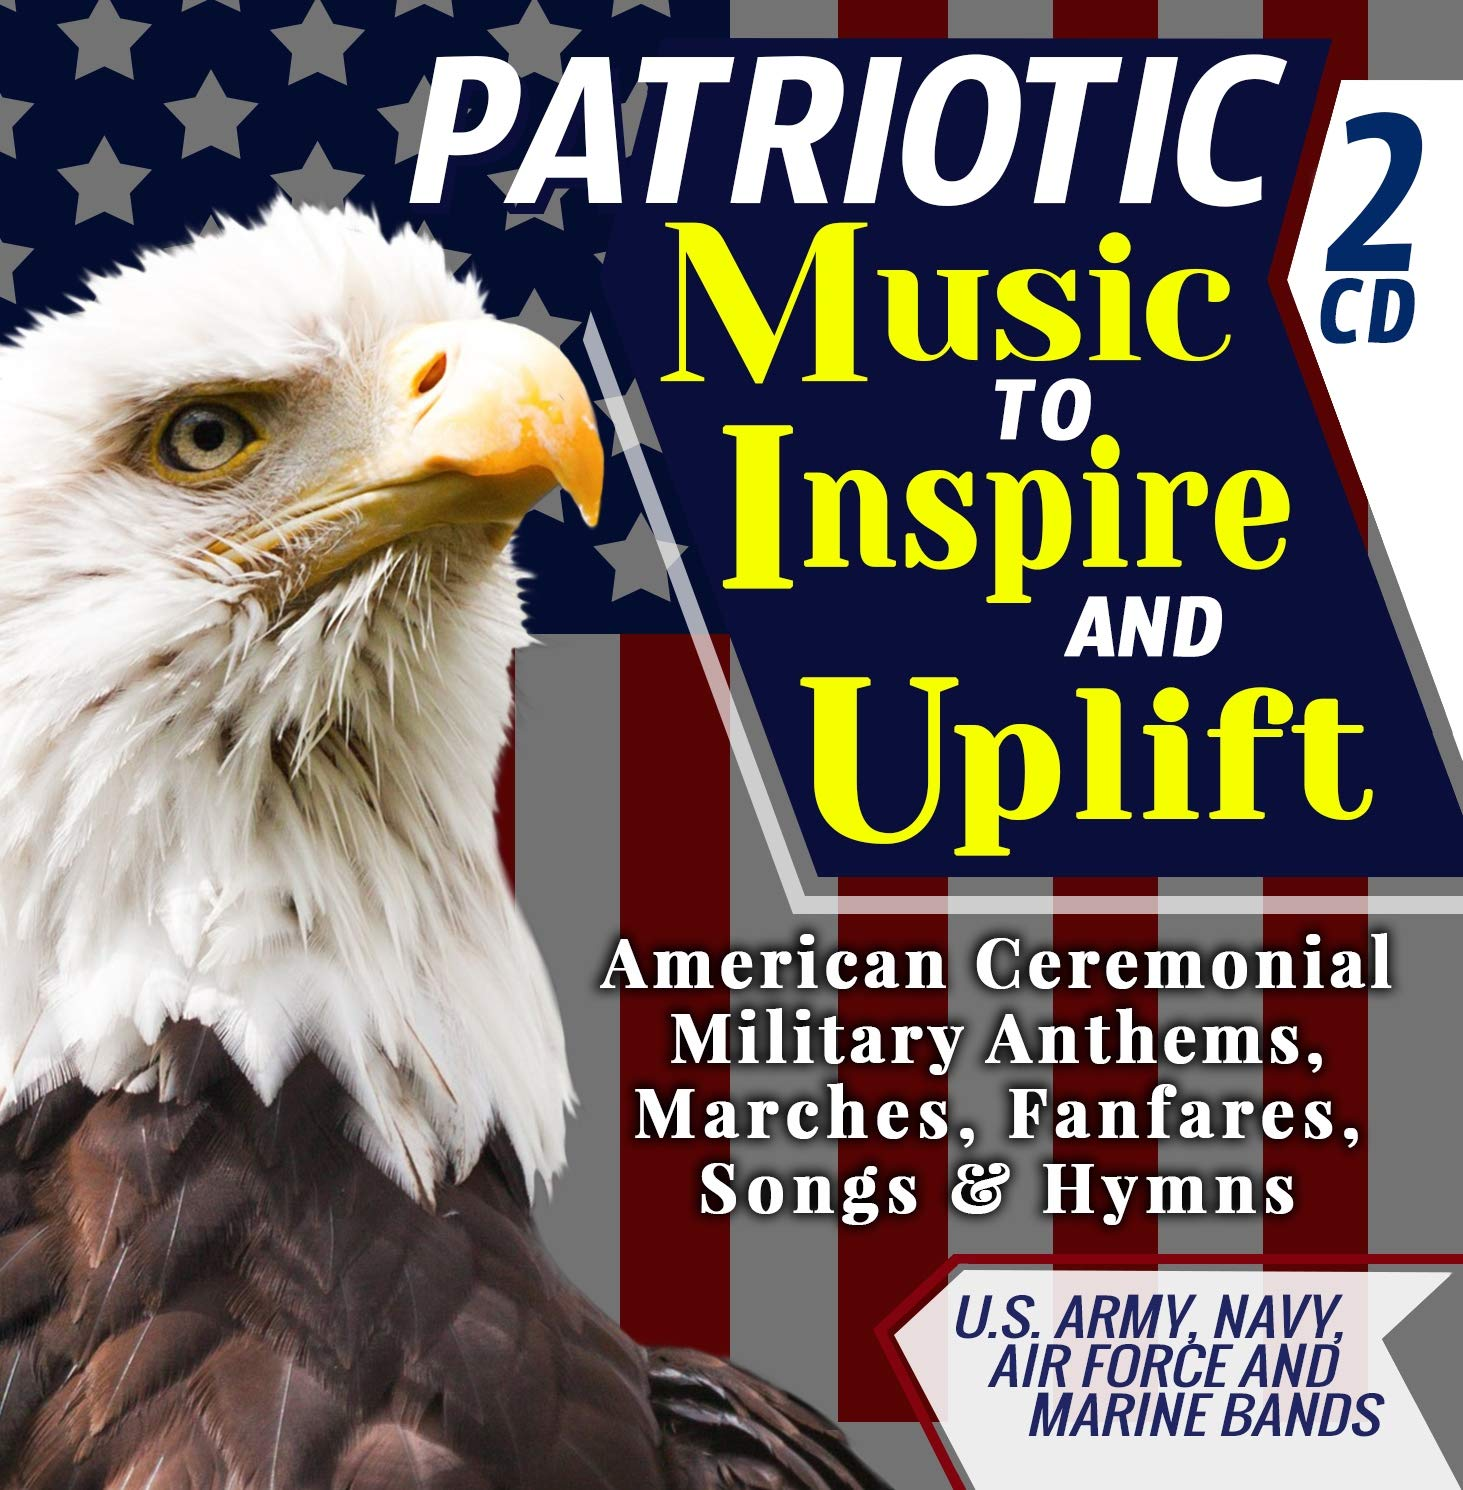 Patriotic Music To Inspire & Uplift - American Ceremonial Military Anthems, Marches, Fanfares, Songs & Hymns - U.S. Army, Navy, Air Force and Marine Bands - Includes ''The Star-Spangled Banner'' - 2 CD by Ironpower Publishing